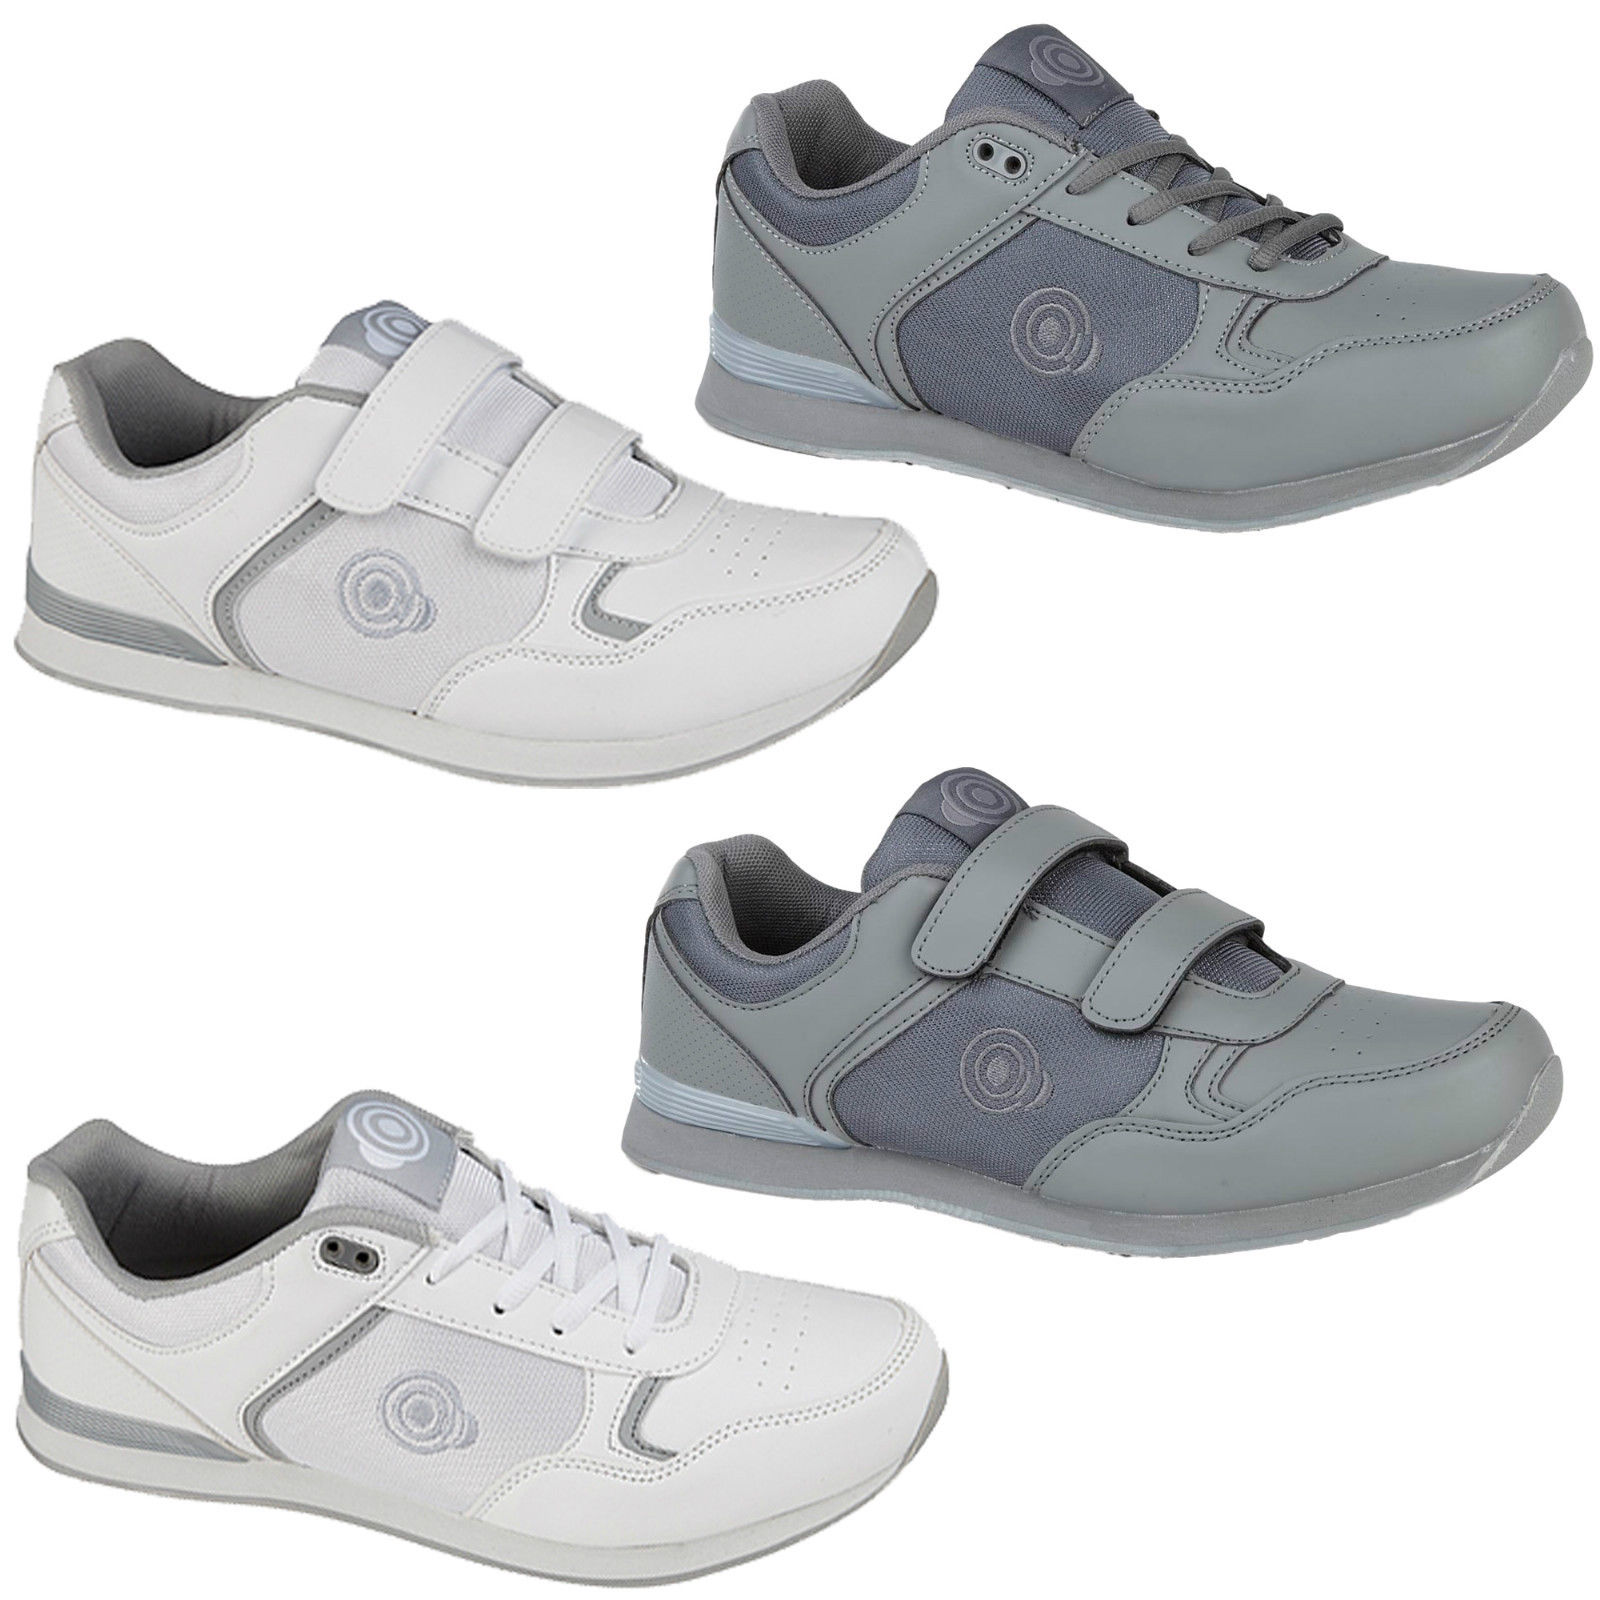 Stuccu: Best Deals on ladies velcro trainers. Up To 70% offBest Offers· Exclusive Deals· Lowest Prices· Compare PricesService catalog: Lowest Prices, Final Sales, Top Deals.